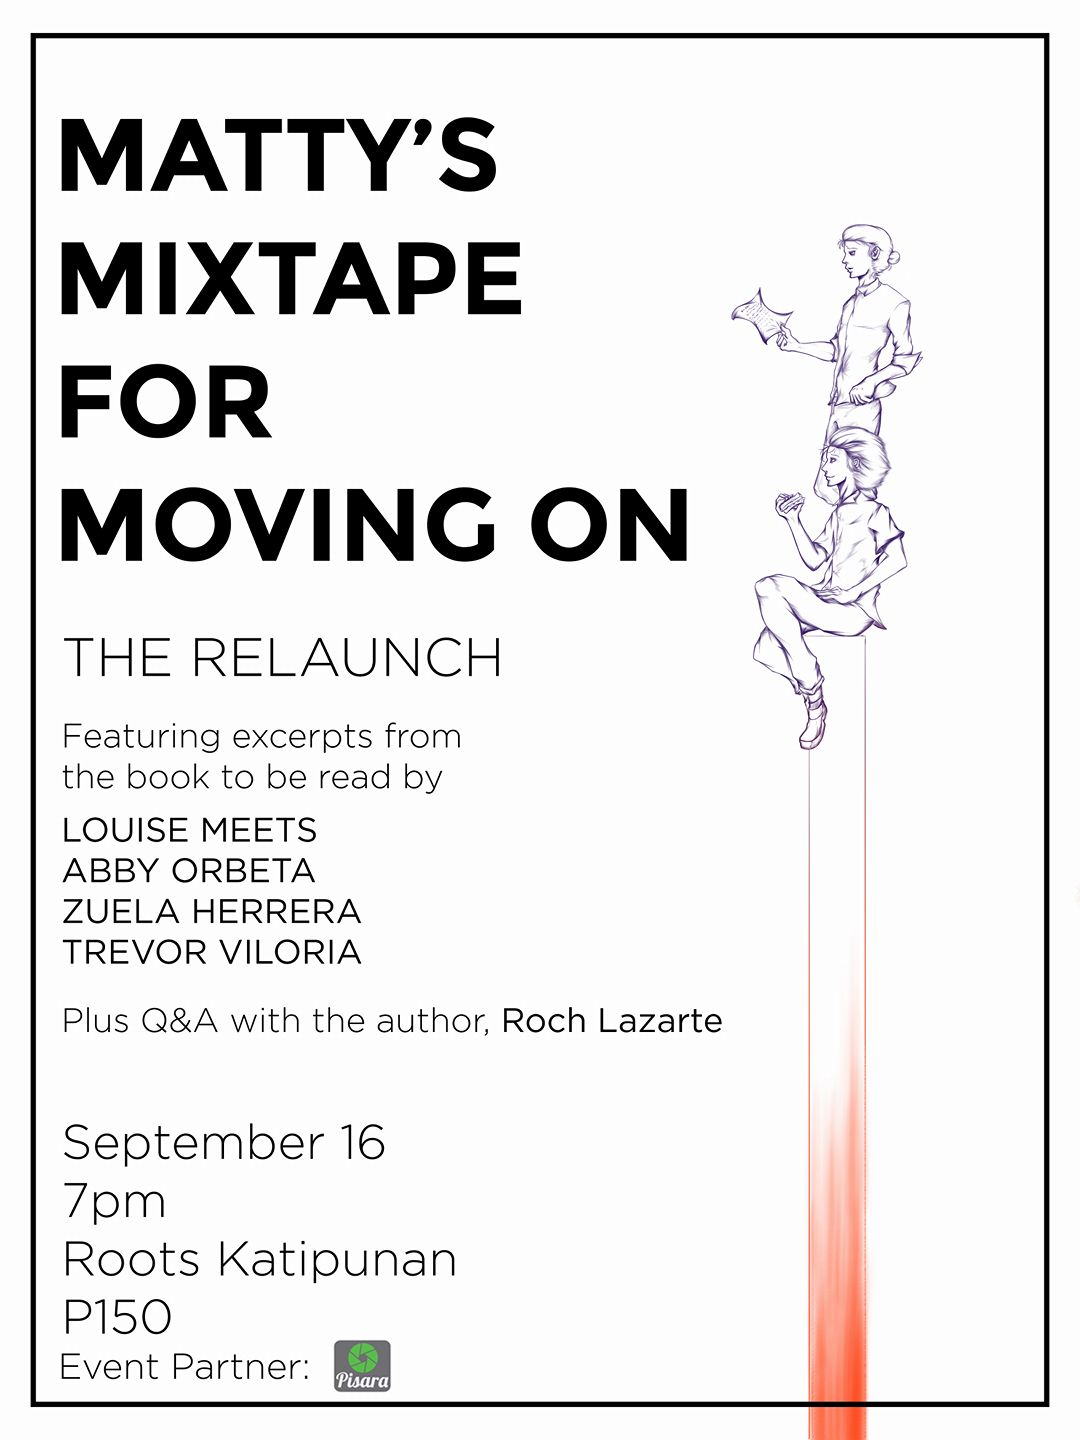 Matty's Mixtape for Moving On: The Relaunch Public · Hosted by Roch Lazarte GoingShare clock Saturday, September 16 at 7 PM - 11 PM pin Show Map Roots Katipunan (Quezon City, Philippines) Unit 106, 307 Katipunan Avenue, FBR Arcade Building, 1108 Quezon City, Philippines About Discussion 24 Going · 224 InterestedSee All Gerardine is going Share Details Matty's Mixtape for Moving On is getting a brand new cover, bonus content, and some merch! please join me and my friends celebrate the anniversary of my book on my birth month! i promise it'll be fun hehehe. see you! ❤ poster done by one of my goodest friends, Nicolai Maverick! --- Roch Lazarte‎Matty's Mixtape for Moving On: The Relaunch Follow · August 15 · Matty's Mixtape for Moving On is getting a brand new cover, bonus content, and some merch! please join me and my friends celebrate the anniversary of my book on my birth month! i promise it'll be fun hehehe. see you! ❤ poster done by one of my goodest friends, Nicolai Maverick! thank you to Pisara Media for being our event partner!